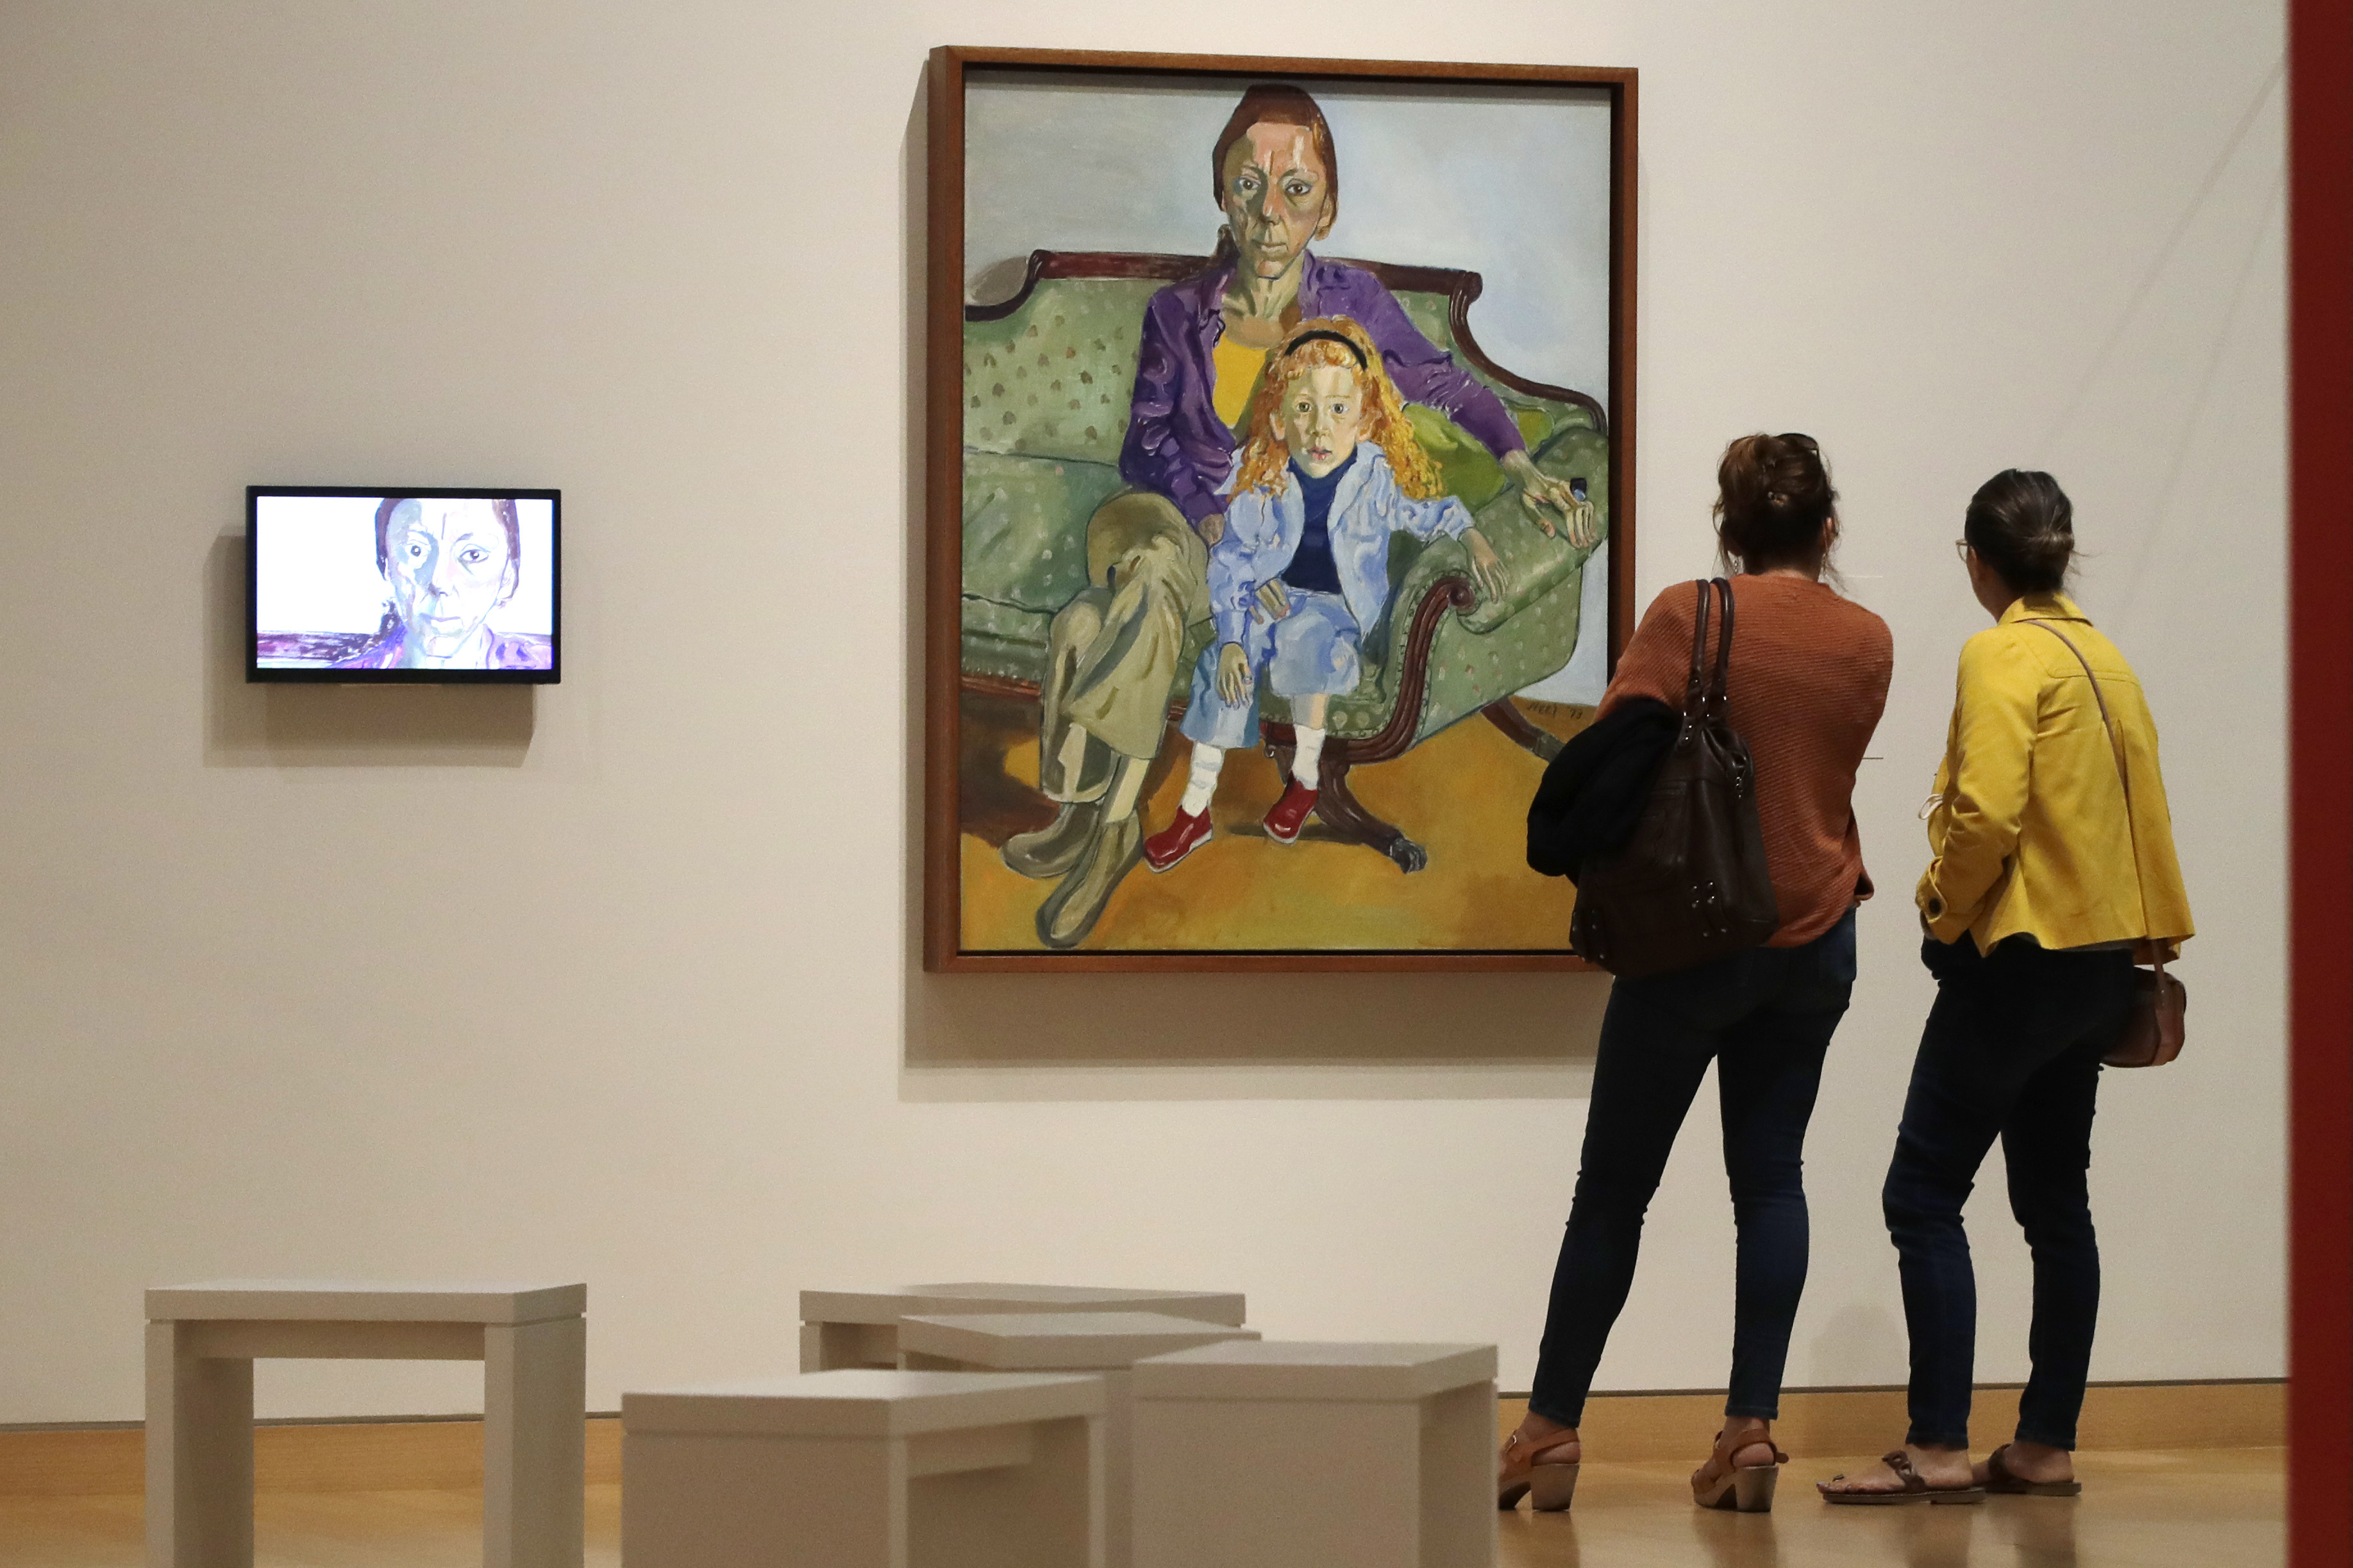 """In this Sept. 18, 2019, photo, two women look at a painting by American artist Alice Neel at the exhibit """"Women Take the Floor"""" at the Museum of Fine Arts in Boston. In the wake of a student group incident last spring when the world-class museum was accused of racism, the MFA has scrambled to make amends. In a nod to the need for greater gender equity, it has given over an entire wing to female artists in """"Women Take the Floor,"""" an exhibition timed to coincide with next year's centennial of U.S. women winning the right to vote. (AP Photo/Elise Amendola)"""